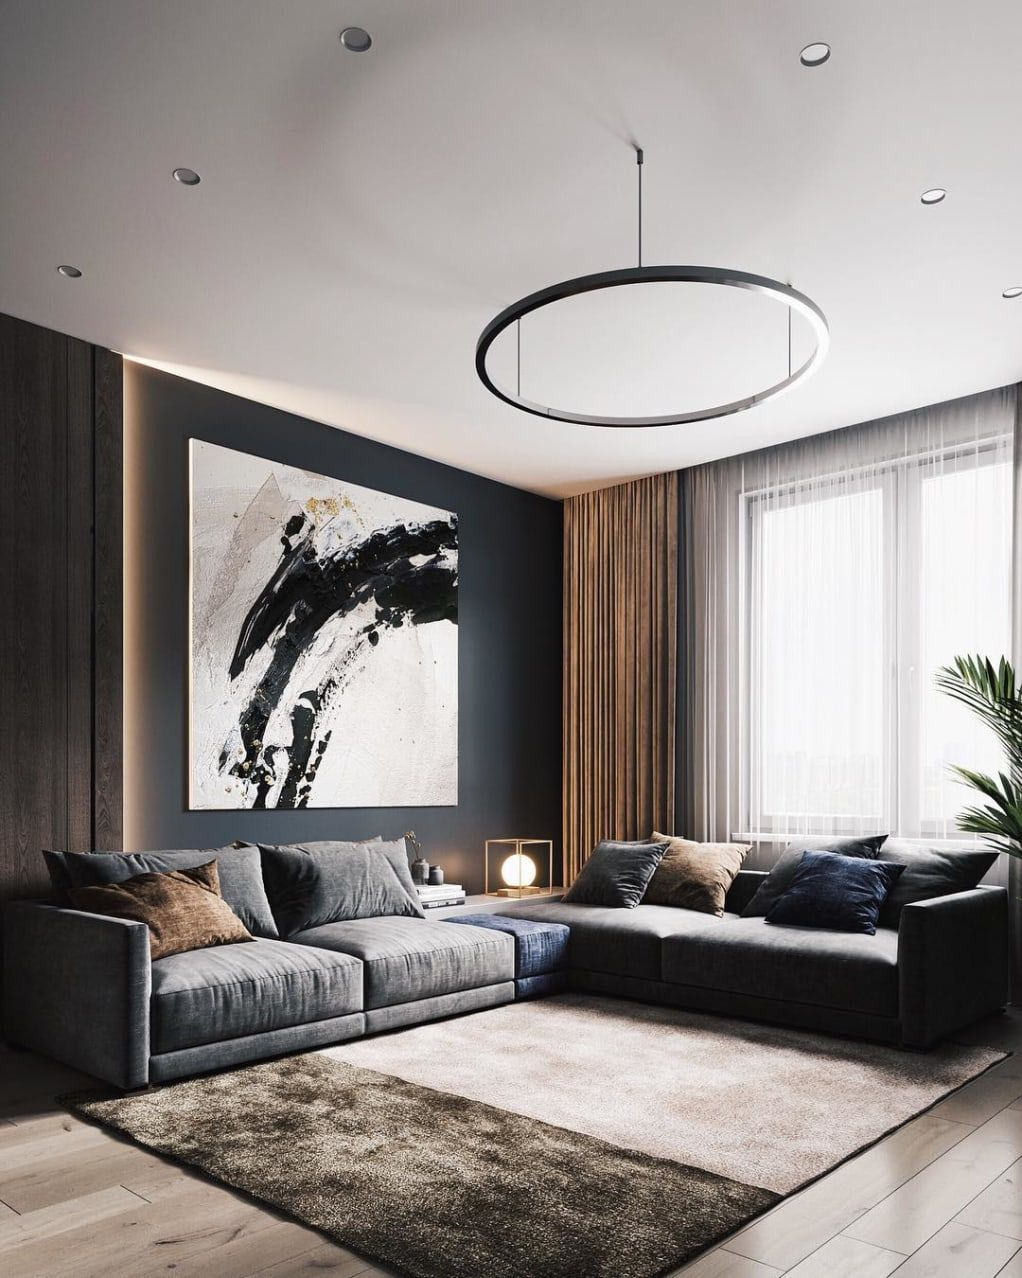 Idée Déco Salon Moderne minimal interior design inspiration en 2020 | décoration